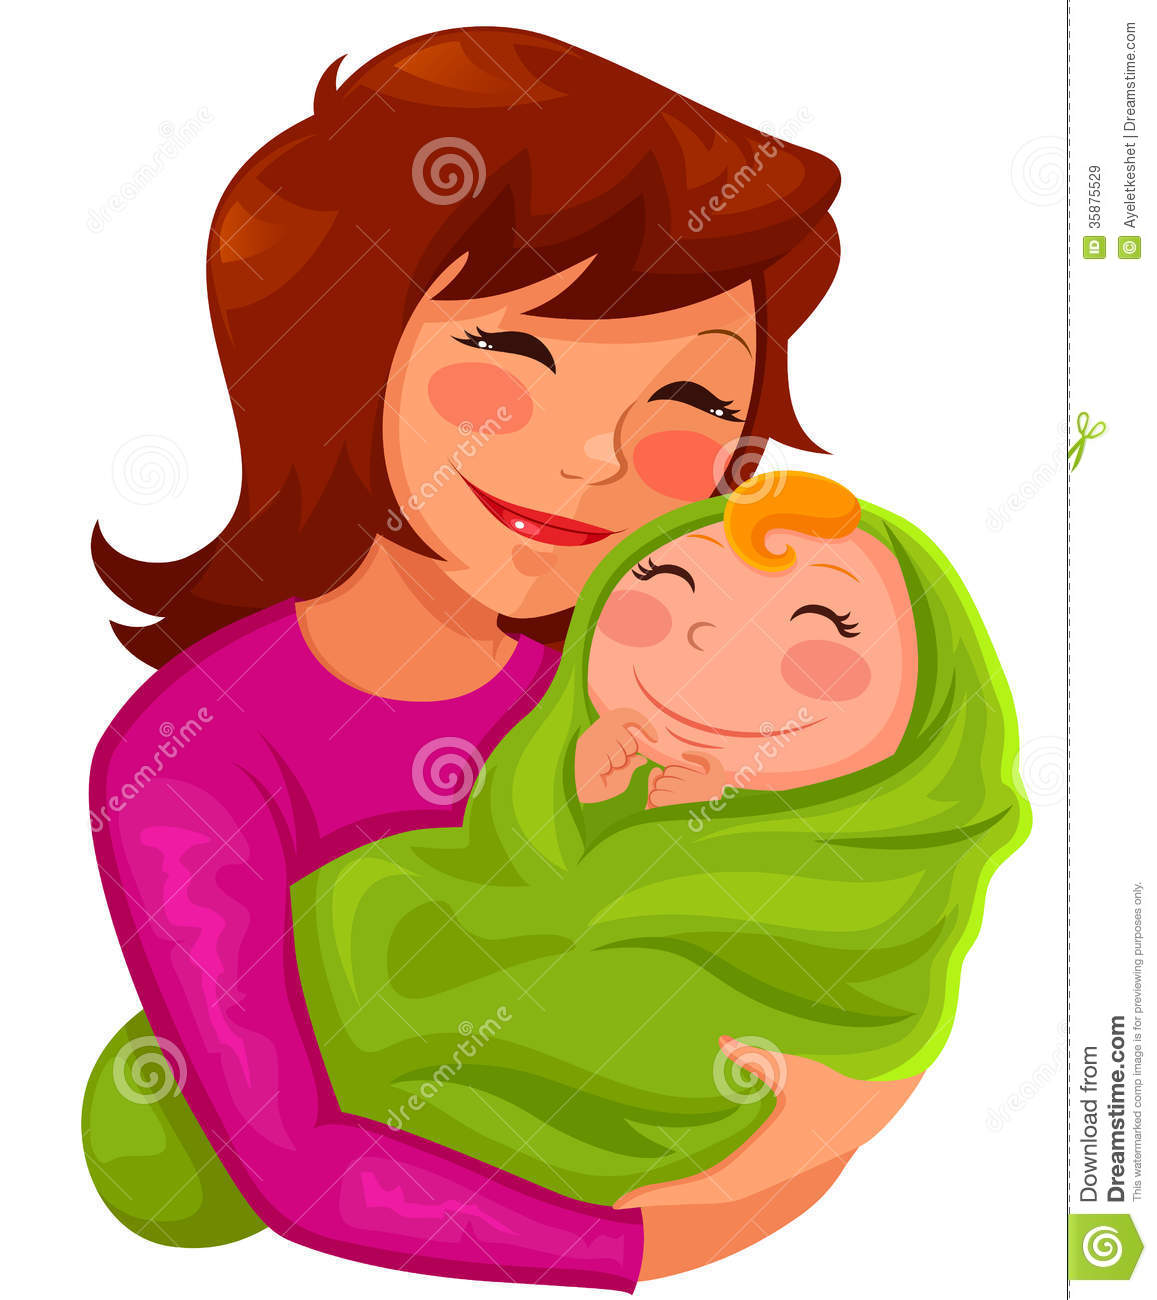 Womb clipart mother and baby Mother%20and%20baby%20clipart Mother Clipart Panda Clipart